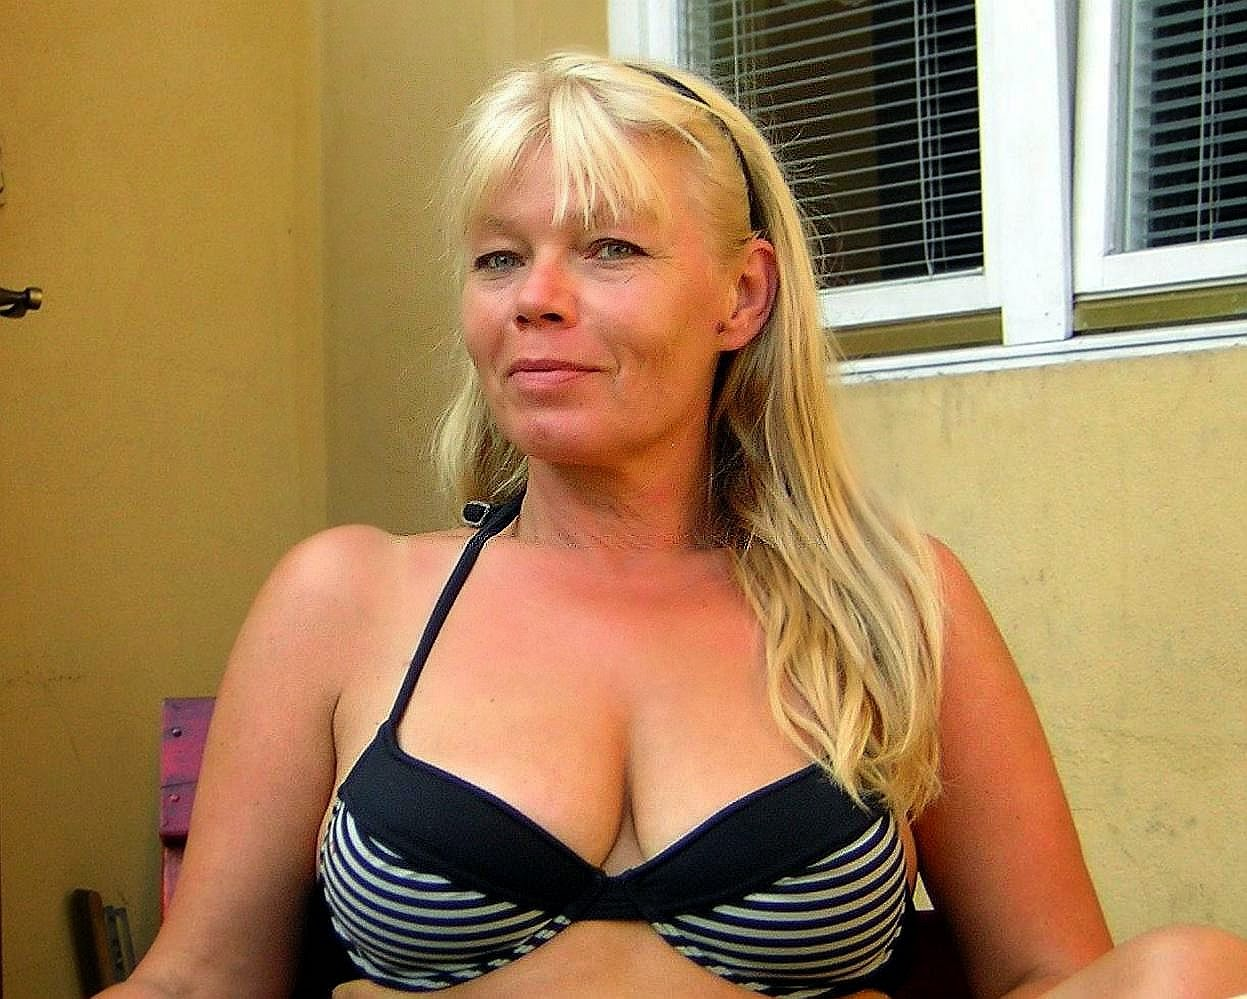 Woman Blond Encounter 60 Seeking Man Sexual To 55 Divorced